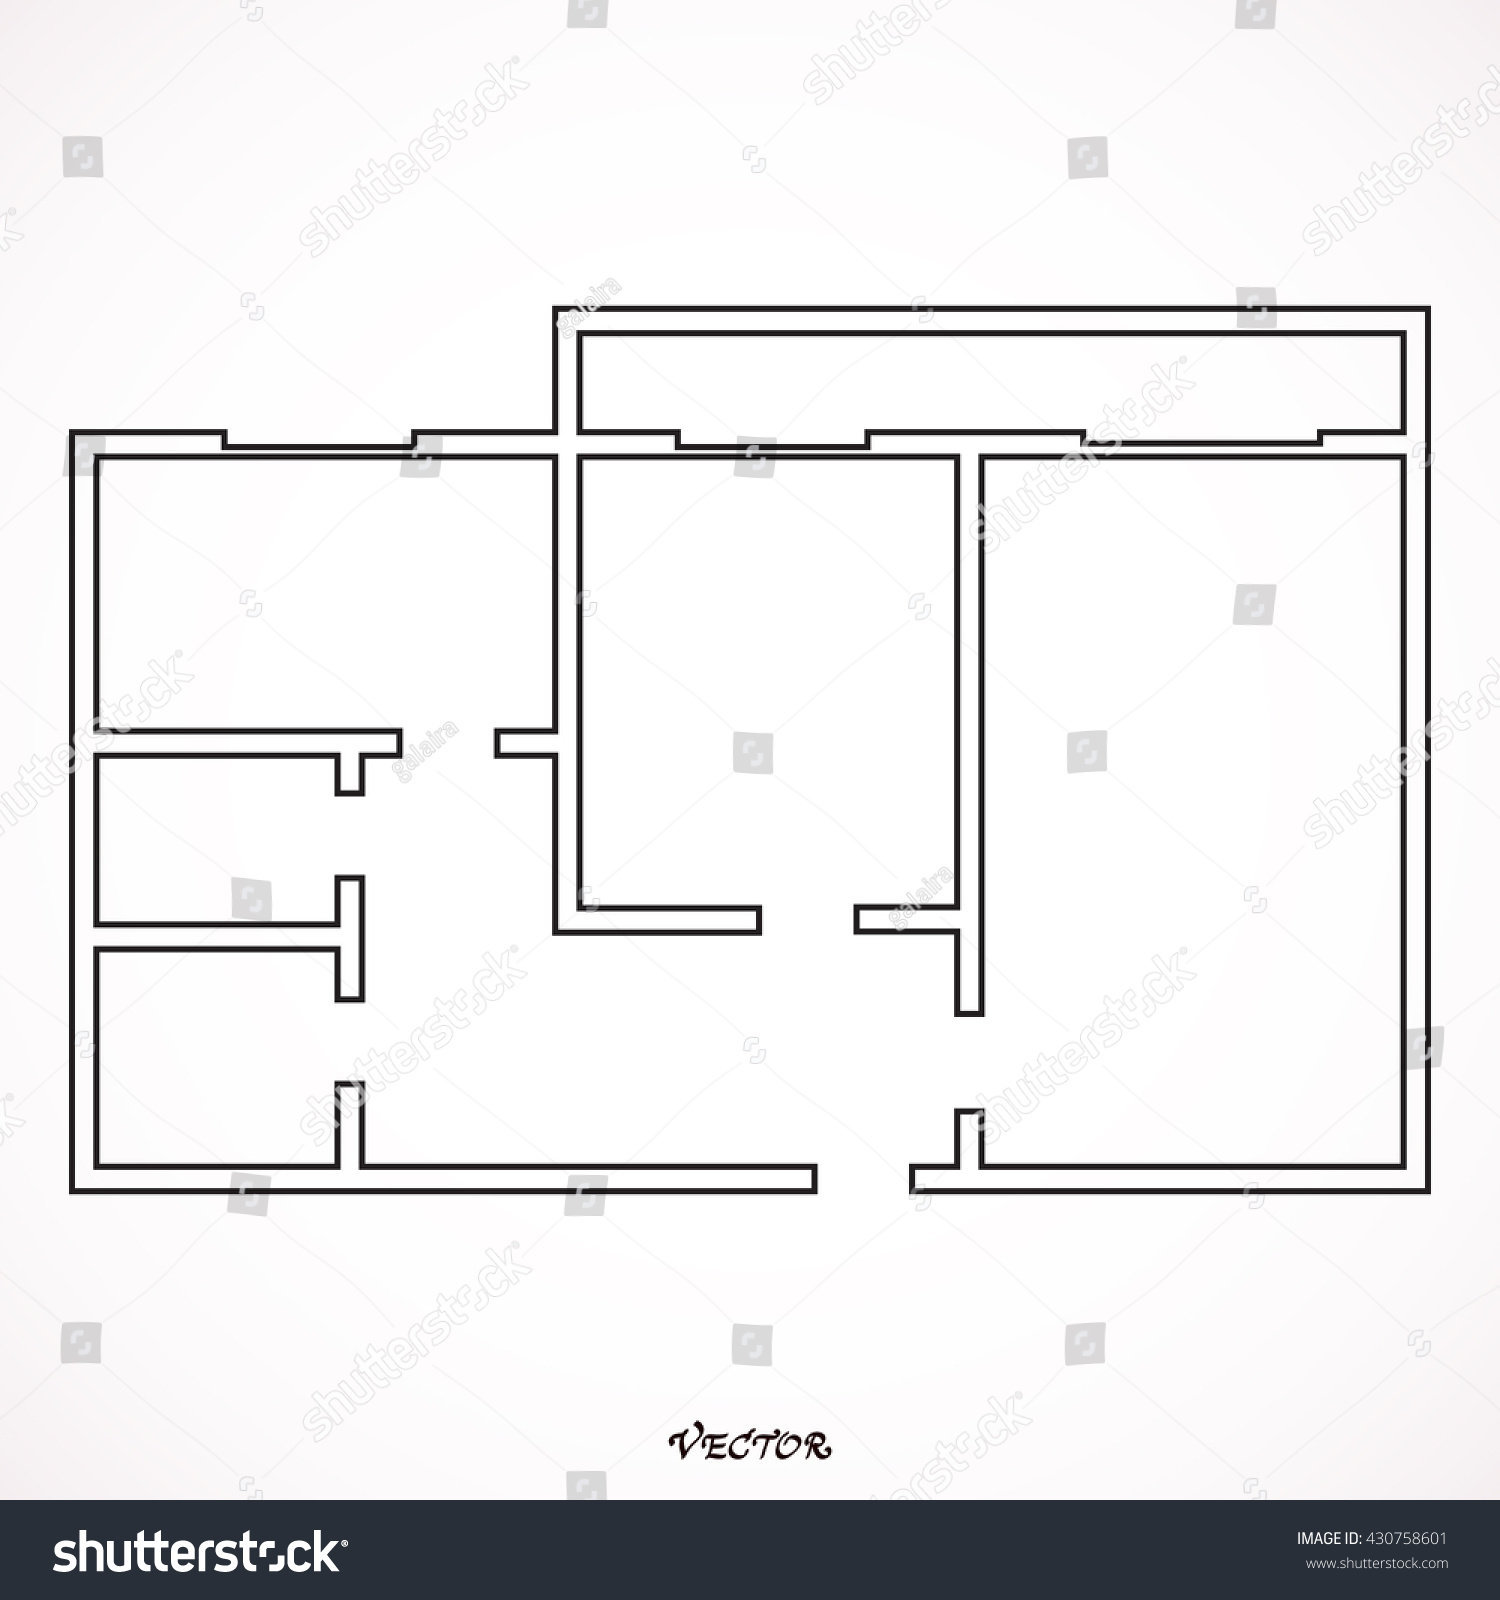 Black white house apartment plan house stock vector 430758601 black and white house apartment plan house home building architecture blueprint icon vector illustration malvernweather Gallery